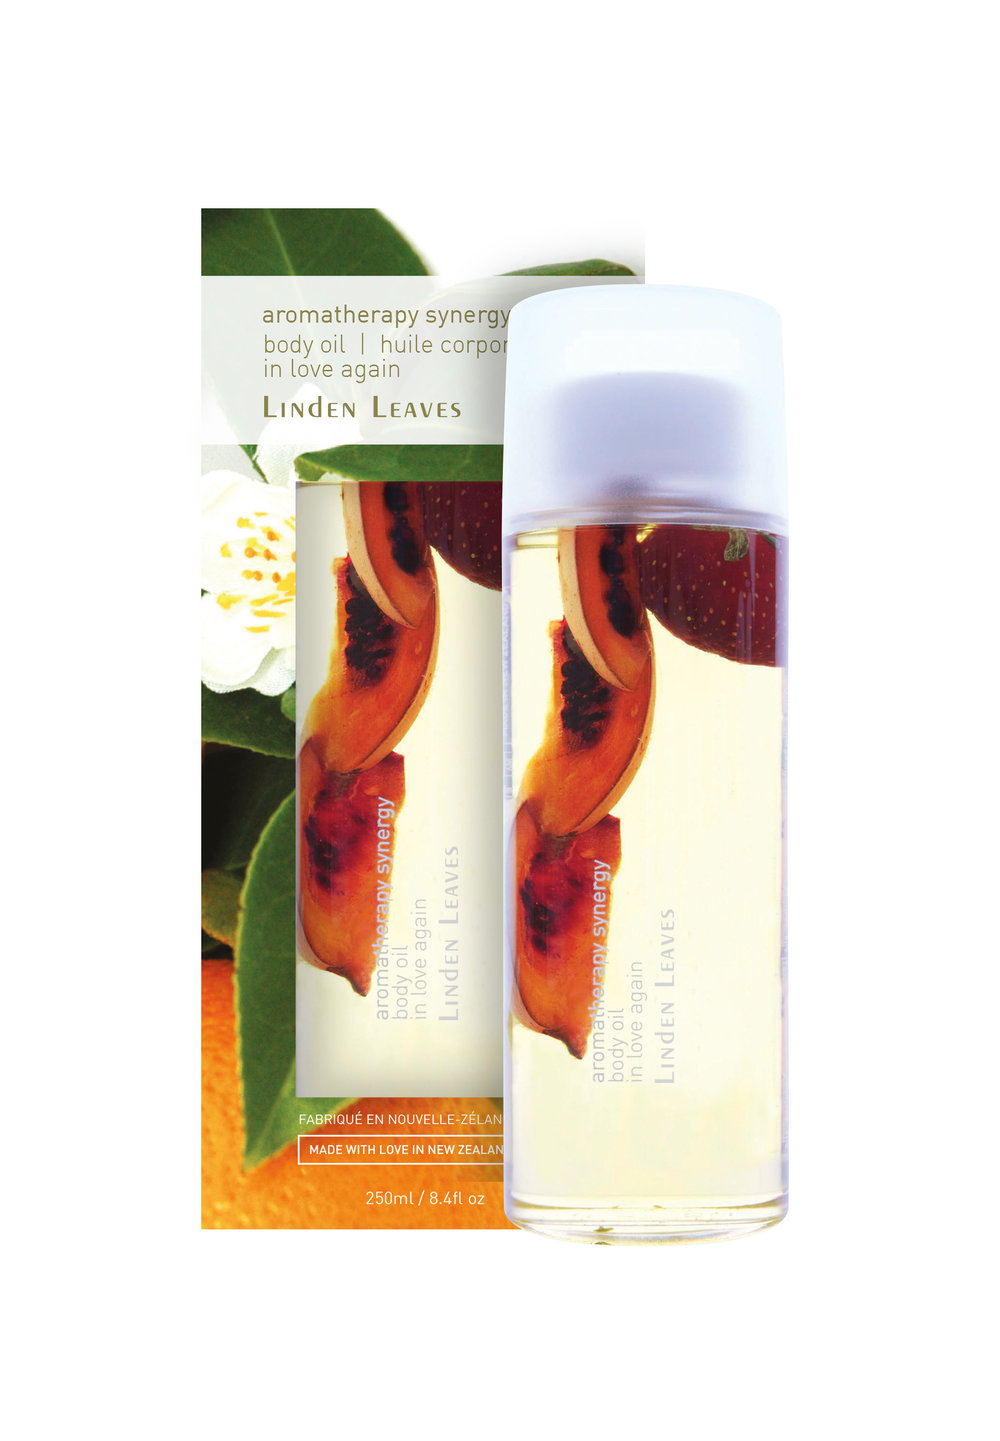 Linden Leaves_aromatherapy_synergy_in love again body oil 250ml.jpg